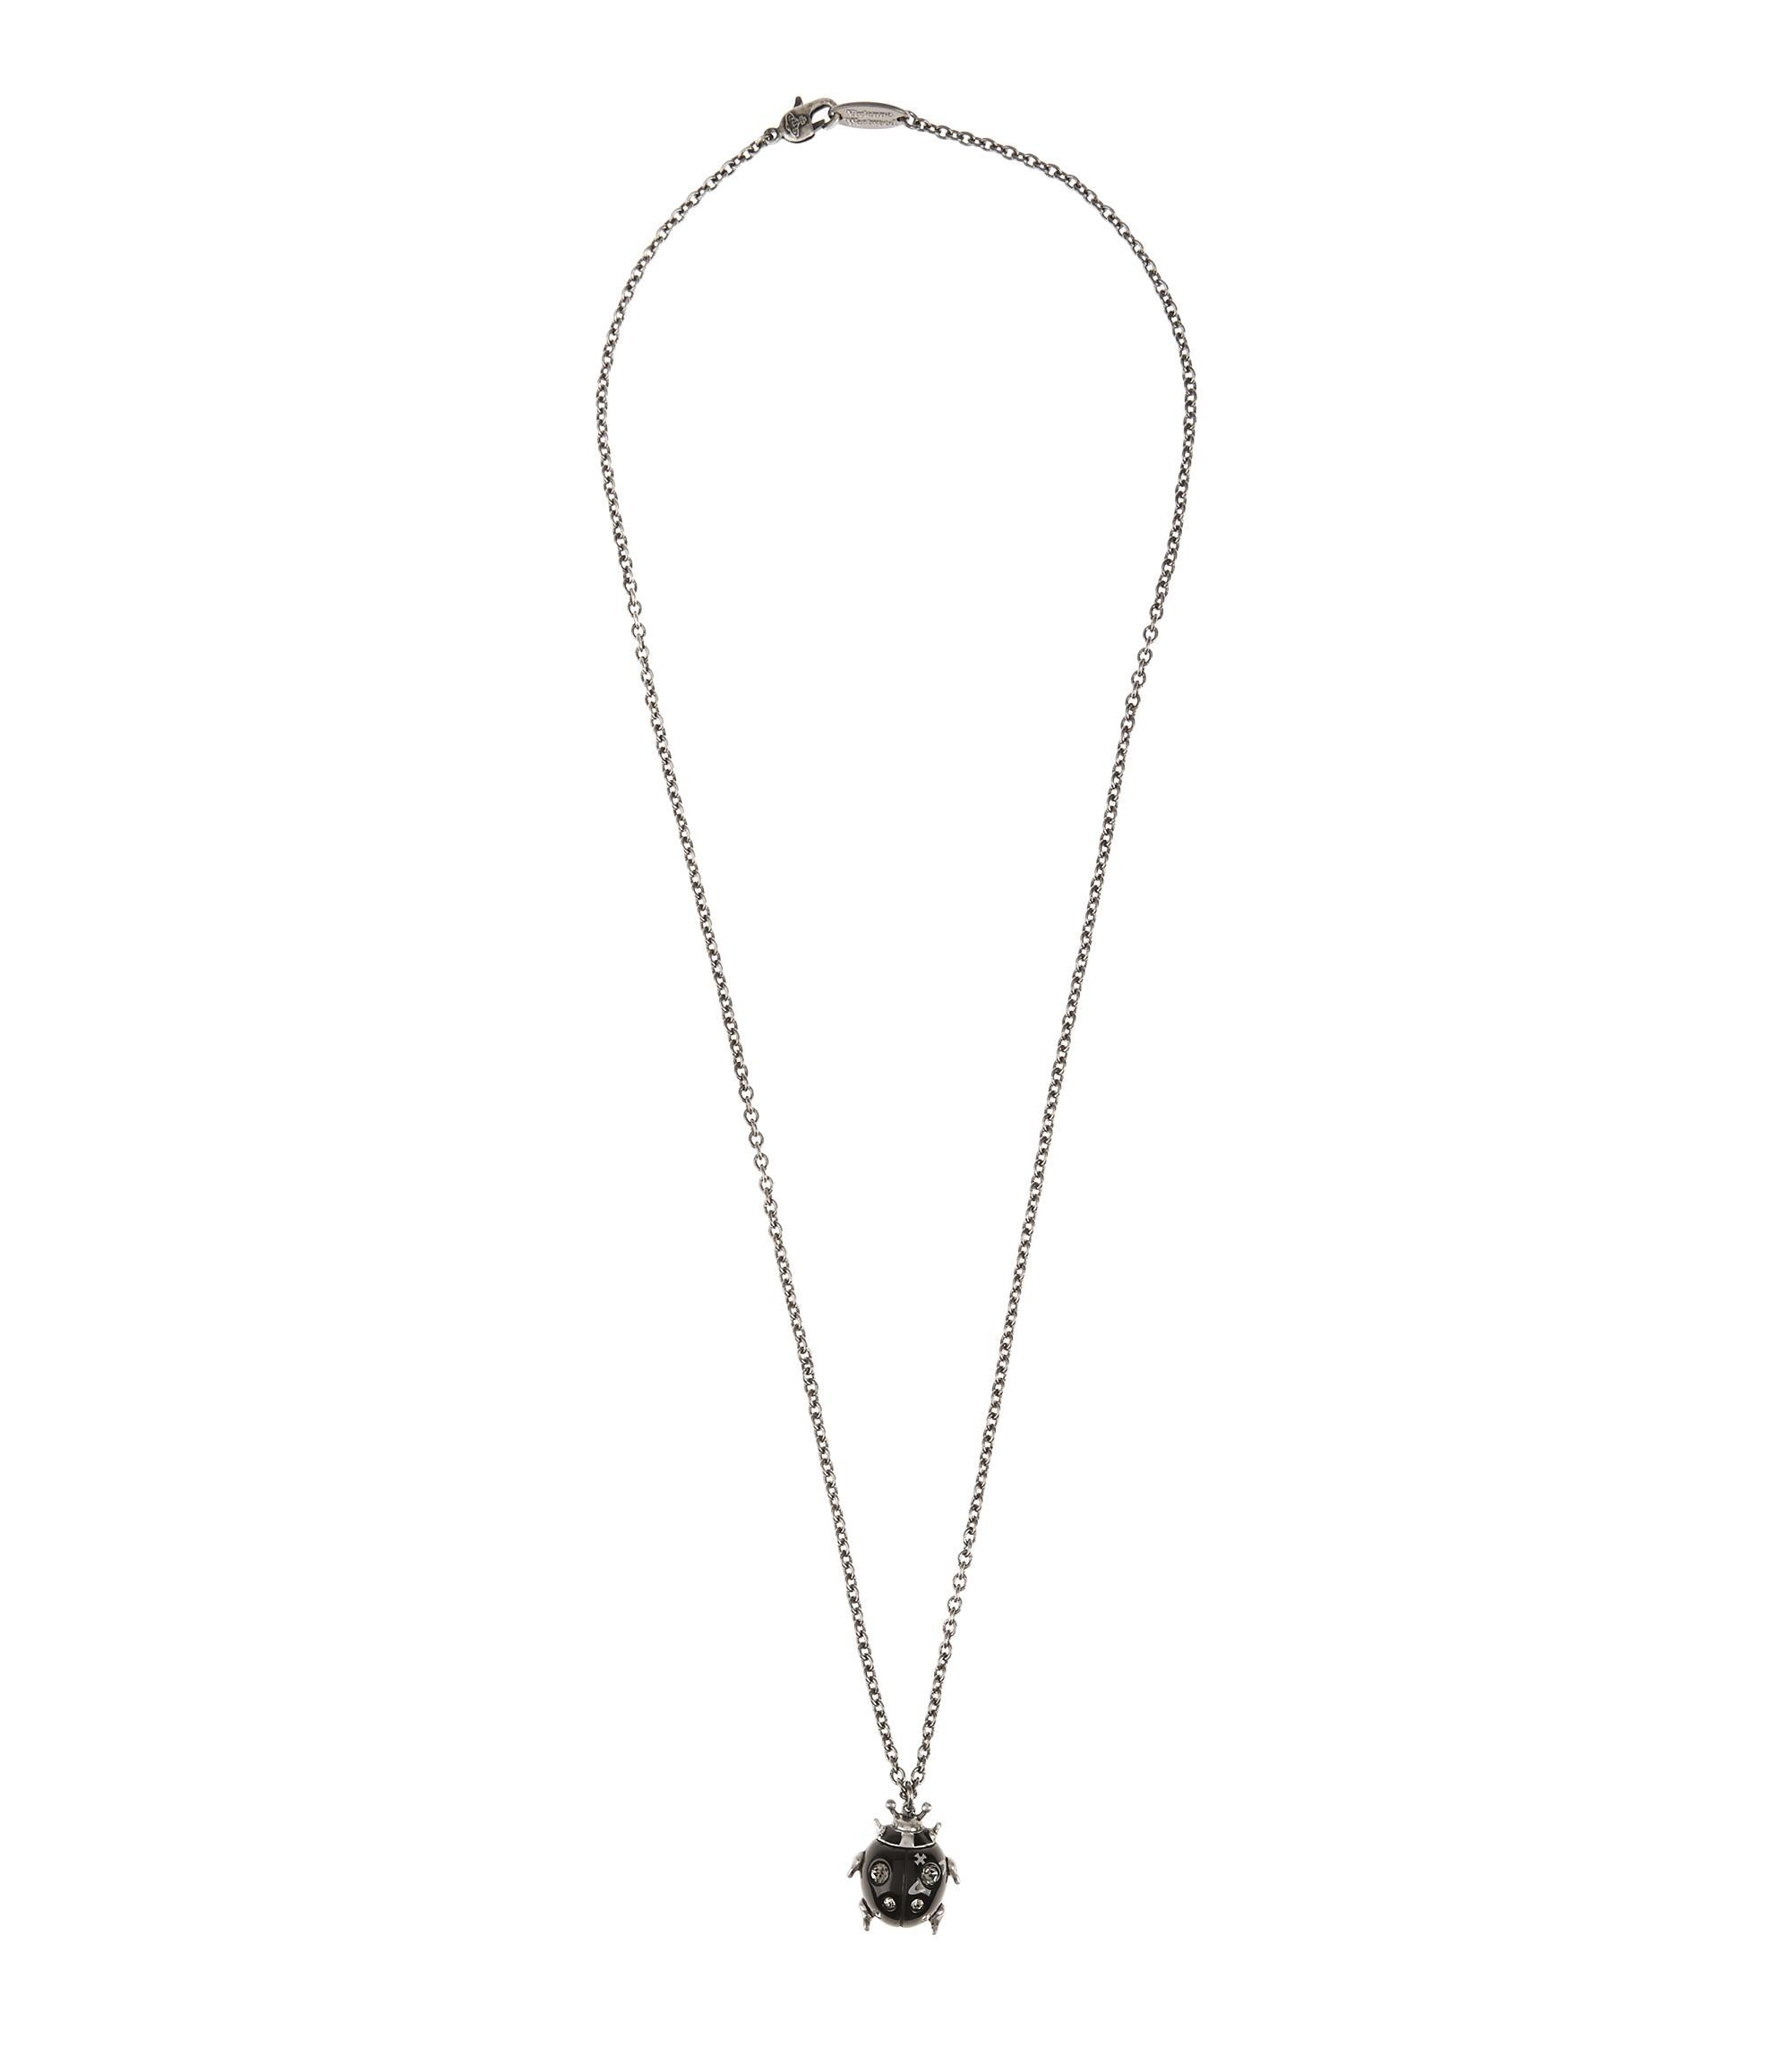 lyst jewelry gallery man gunmetal metallic mouse in cubic for zirkoniablack vivienne black ename pendant westwood men